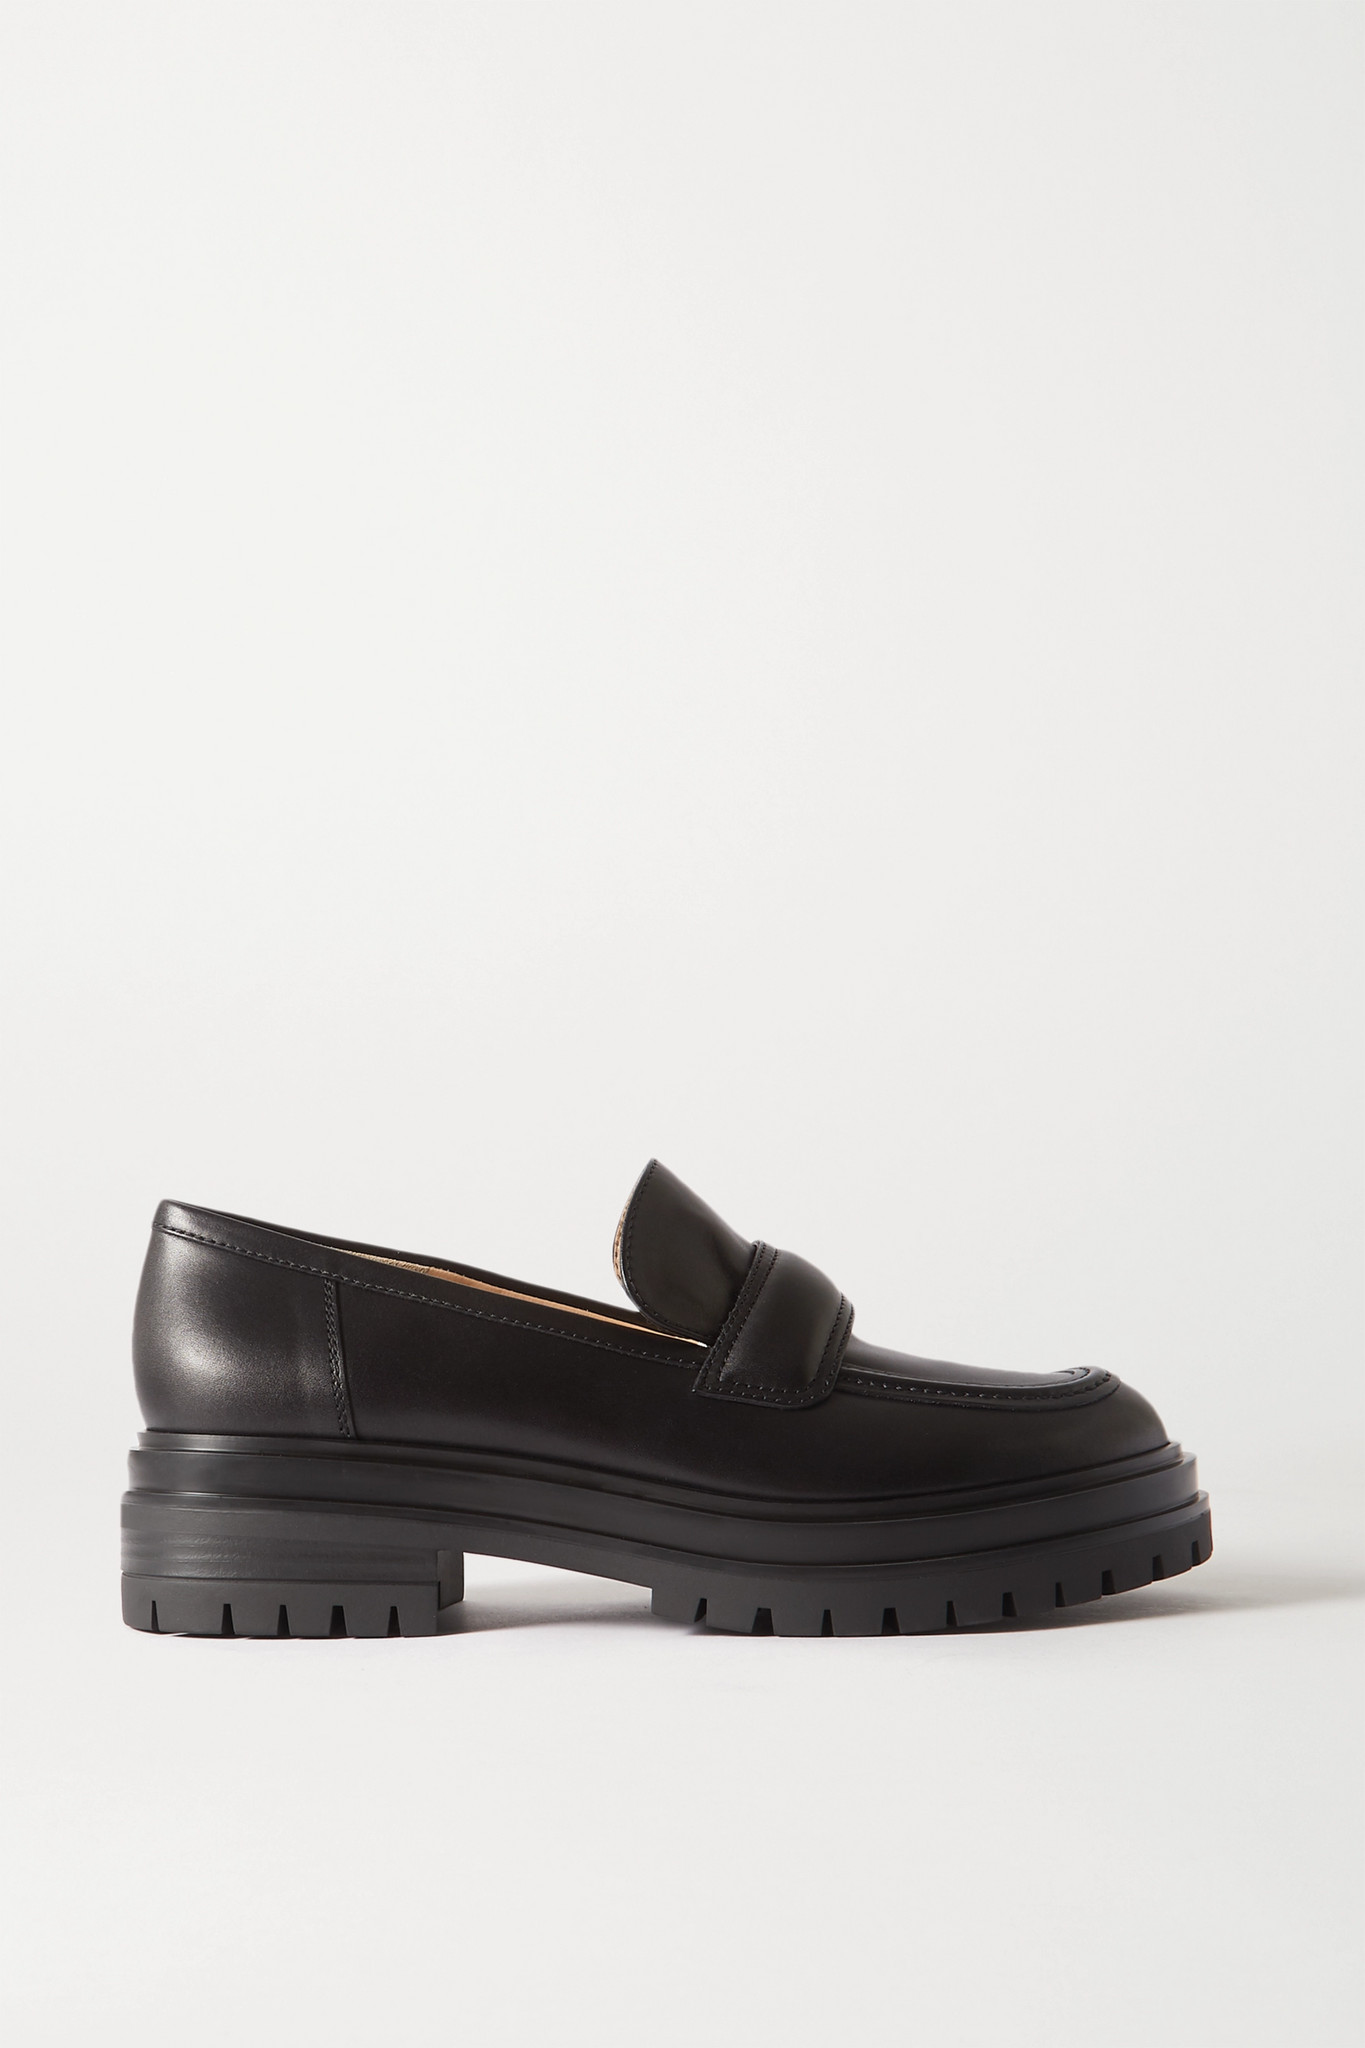 GIANVITO ROSSI - Leather Loafers - Black - IT40.5